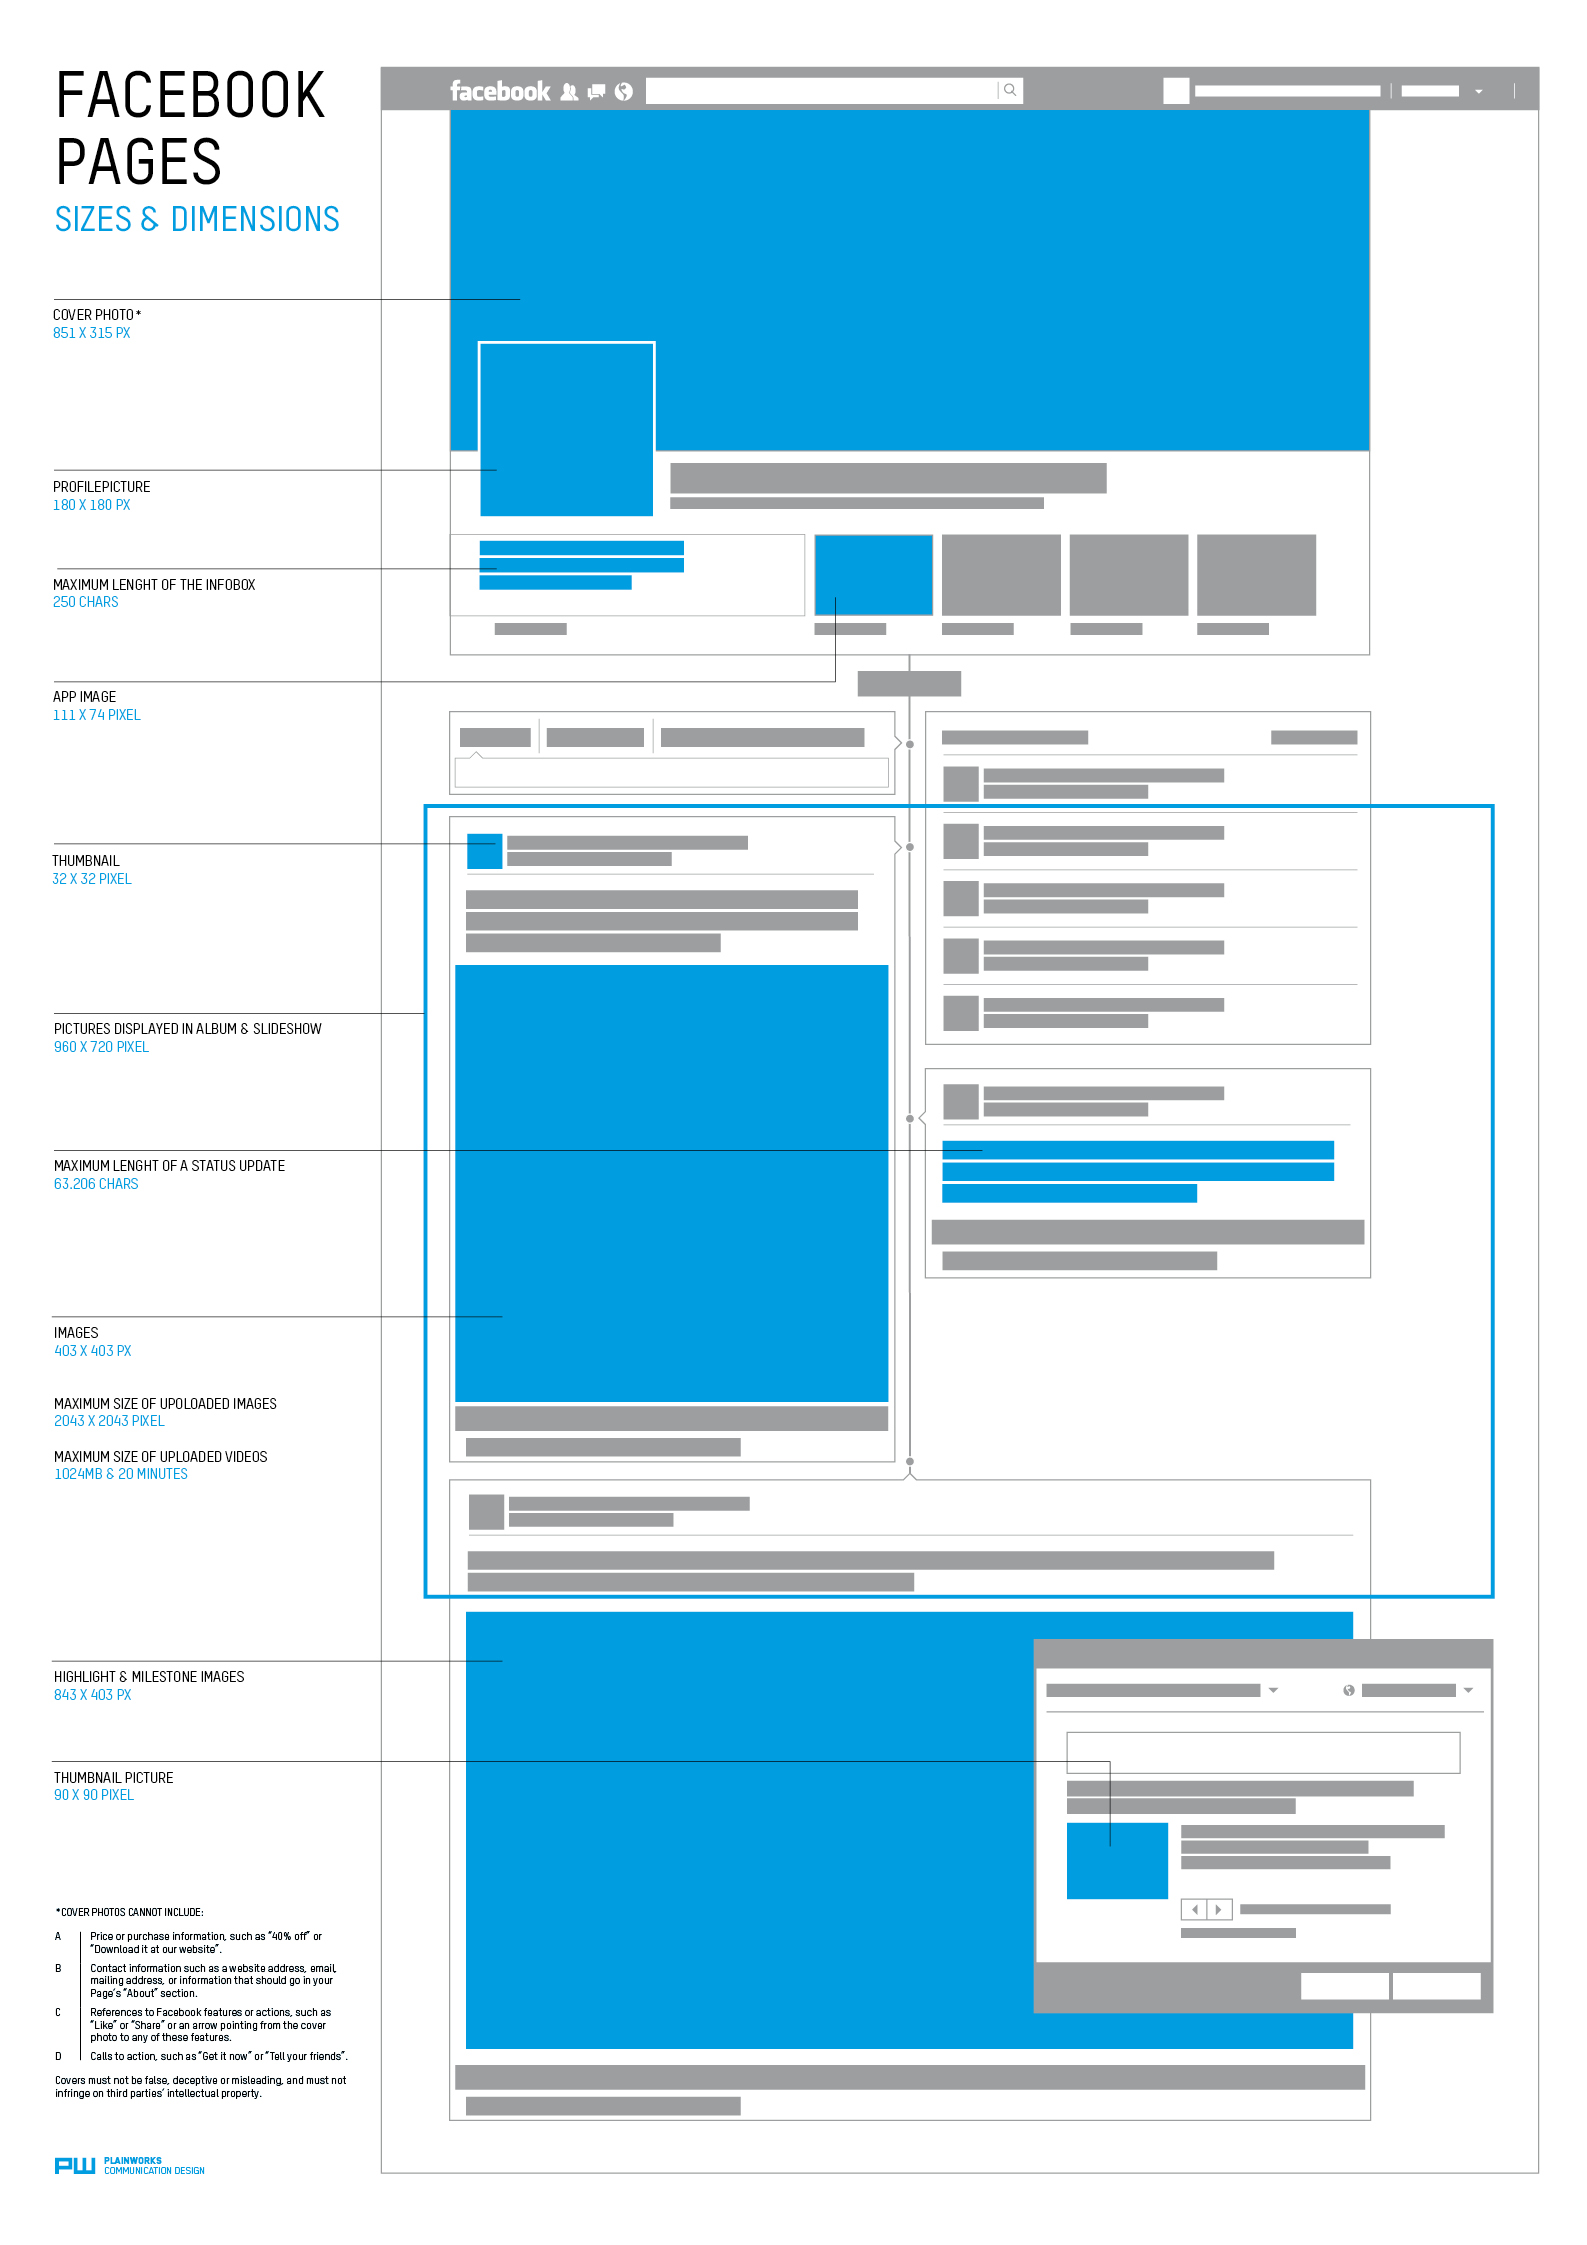 Facebook Pages - Sizes and Dimensions | Visual ly